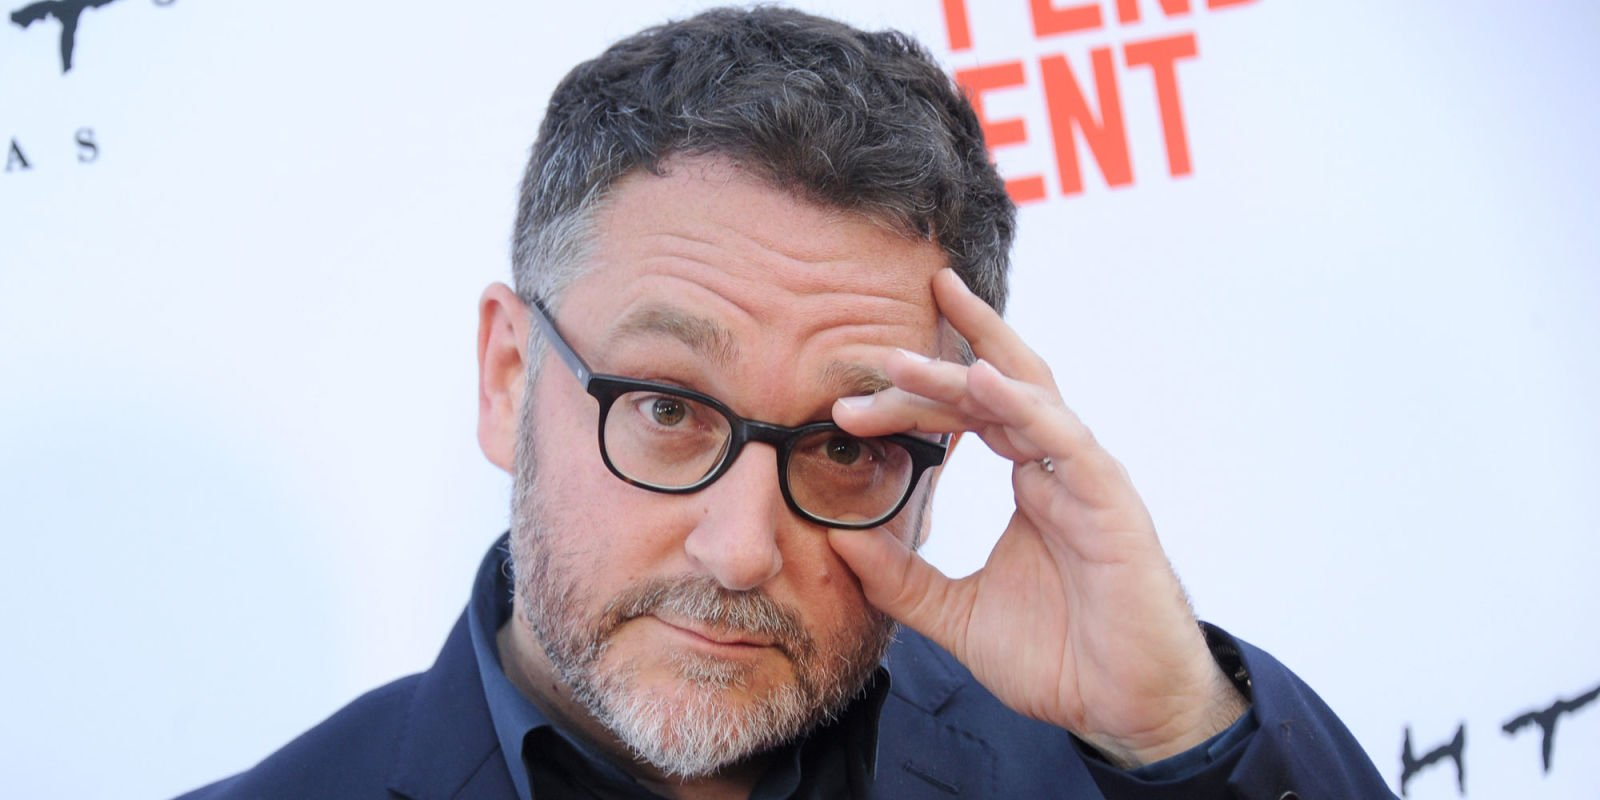 Colin Trevorrow wasn't the first choice to direct Jurassic World